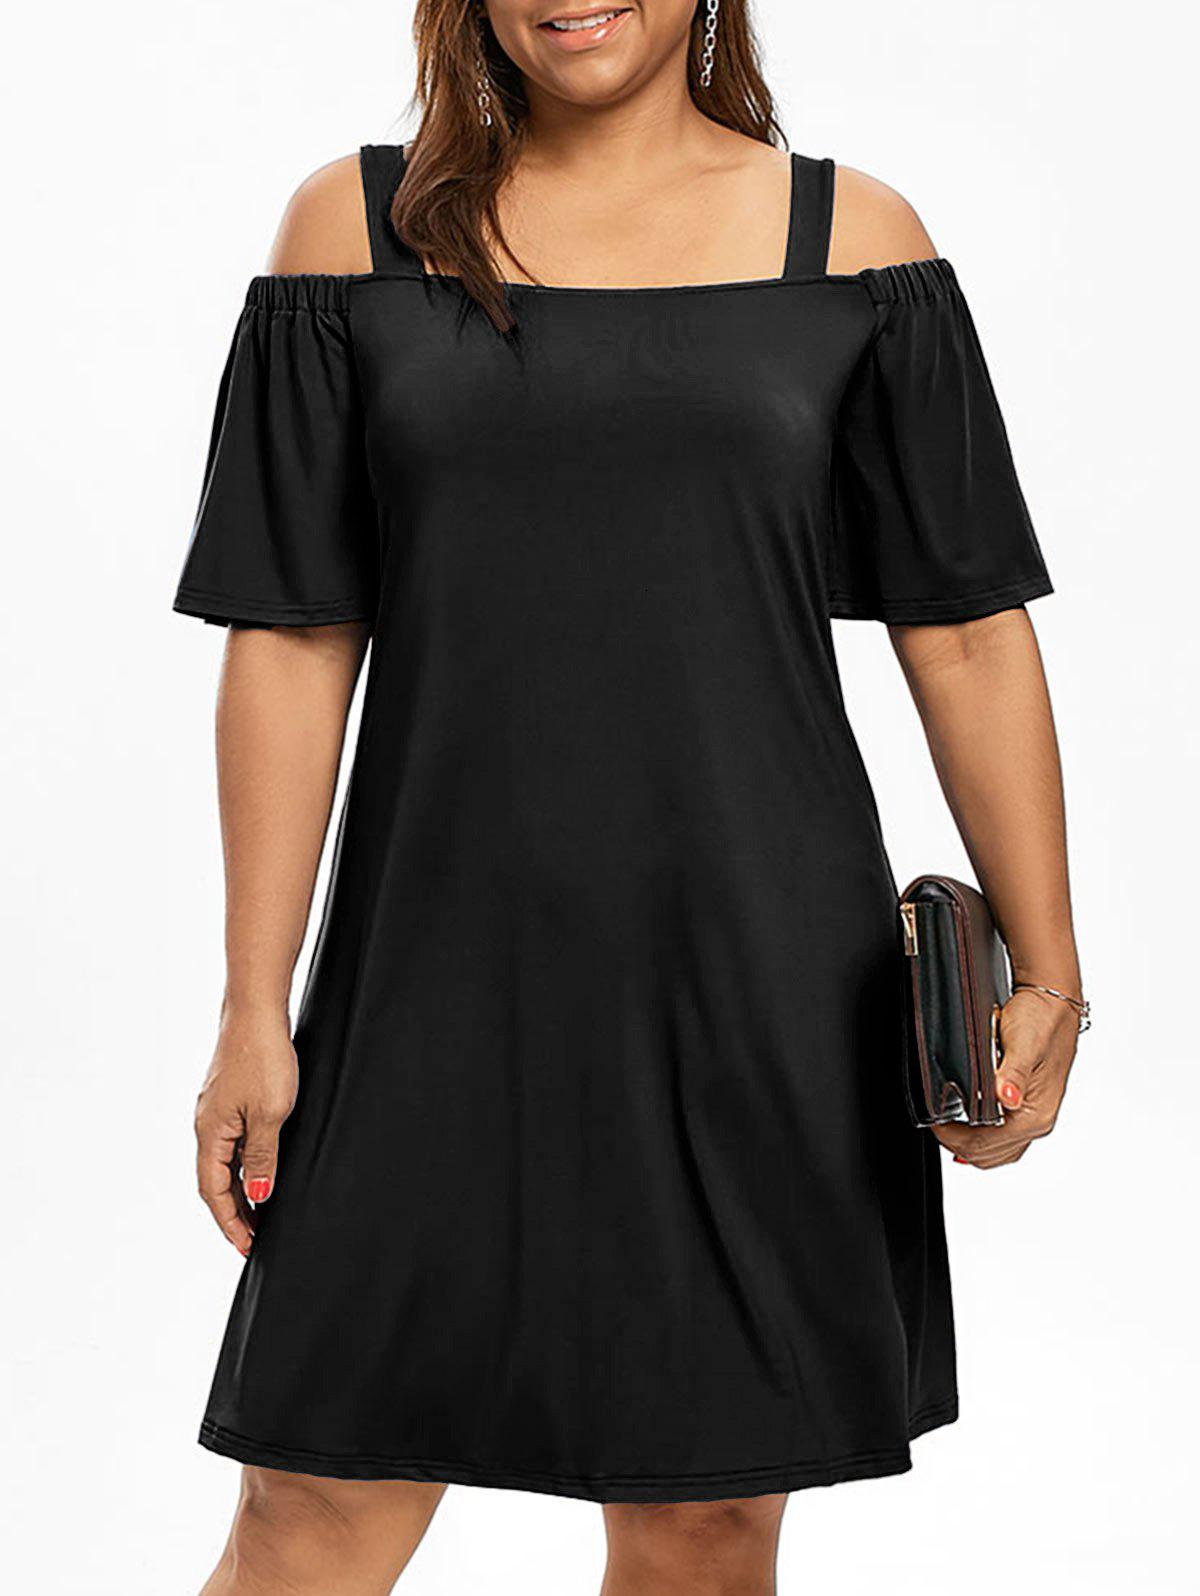 Cold Shoulder Half Sleeve Plus Size DressWOMEN<br><br>Size: 4XL; Color: BLACK; Style: Brief; Material: Polyester,Spandex; Silhouette: A-Line; Dresses Length: Knee-Length; Neckline: Square Collar; Sleeve Type: Flare Sleeve; Sleeve Length: Half Sleeves; Waist: Natural; Pattern Type: Solid Color; Elasticity: Elastic; With Belt: No; Season: Fall,Spring; Weight: 0.3200kg; Package Contents: 1 x Dress;